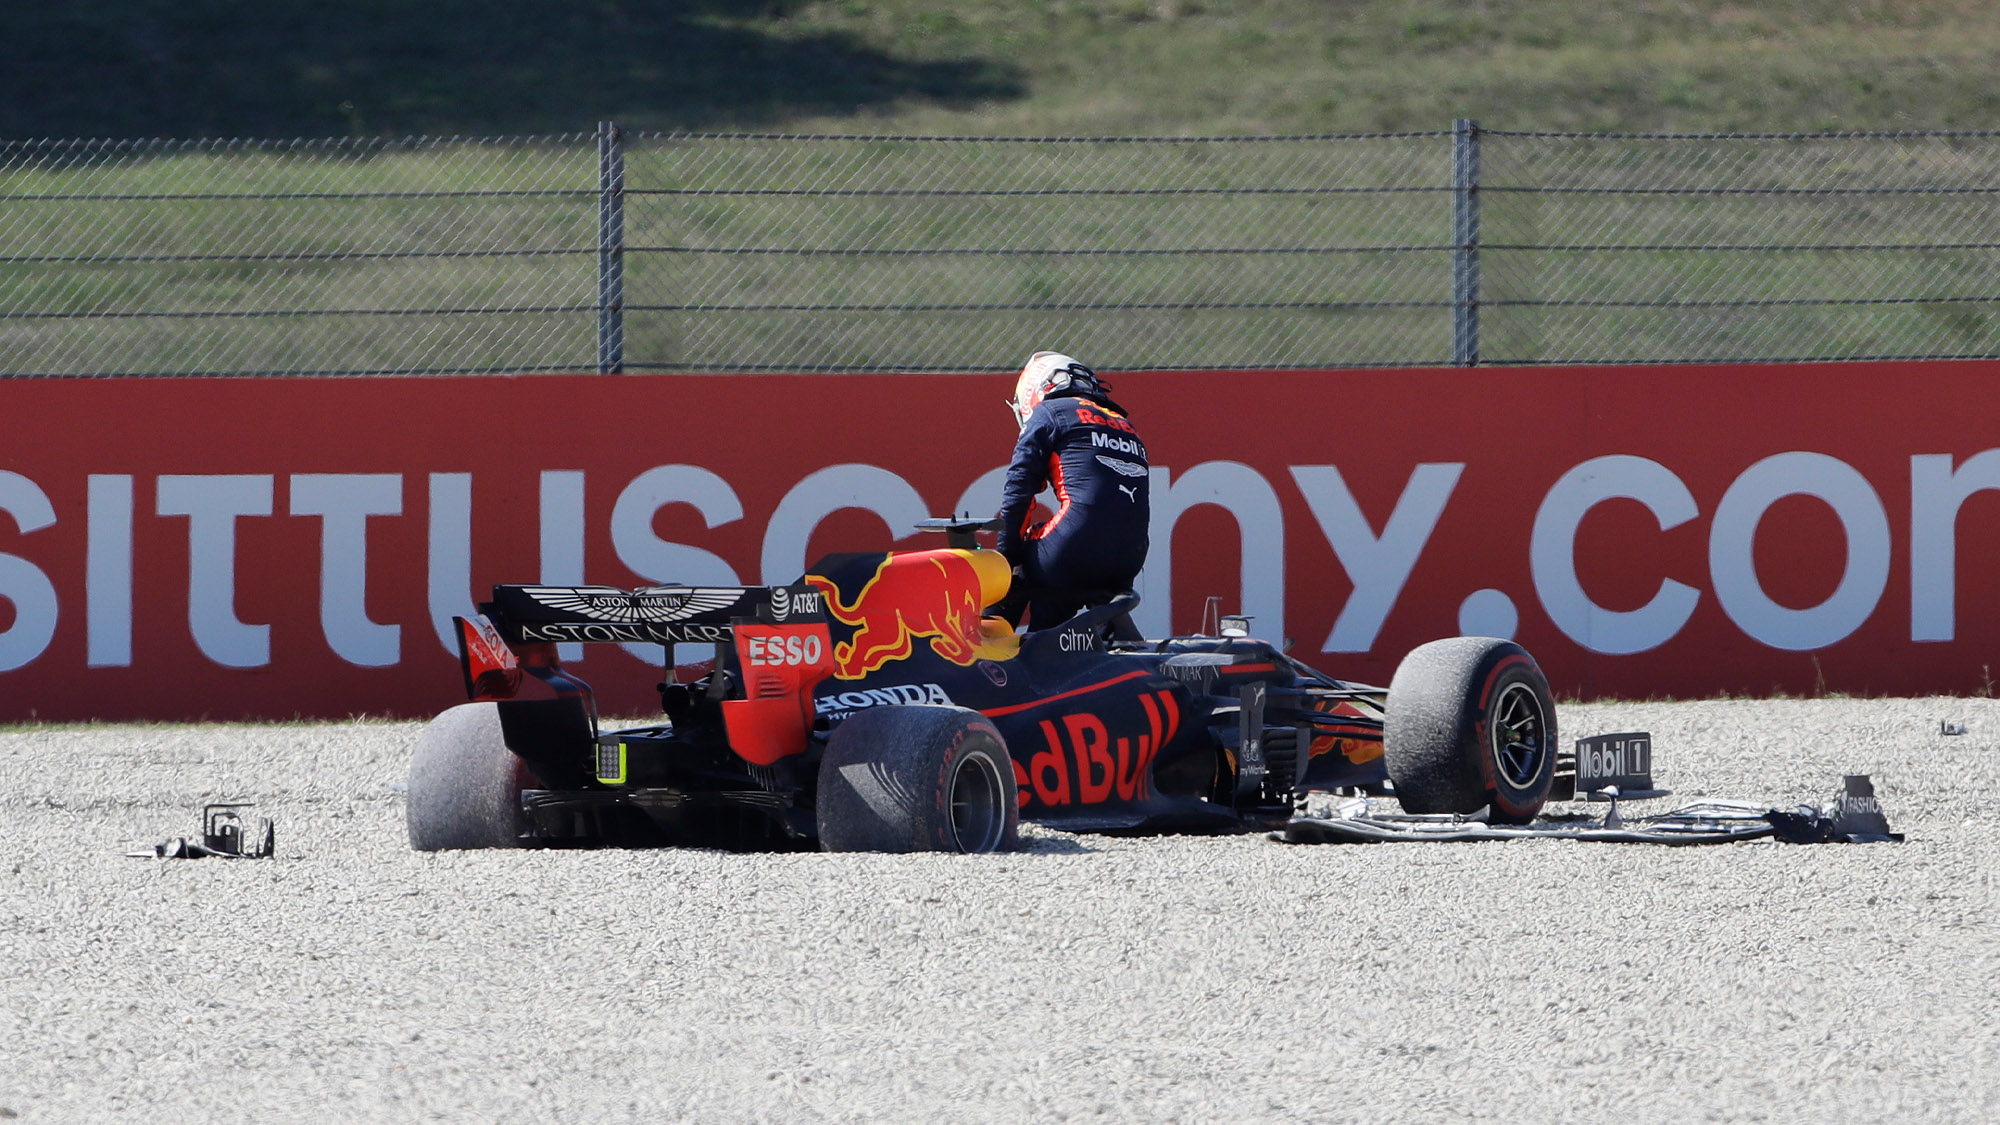 Max Verstappen climbs out of his Red Bull after crashing out of the 2020 F1 TUscan Grand Prix at Mugello